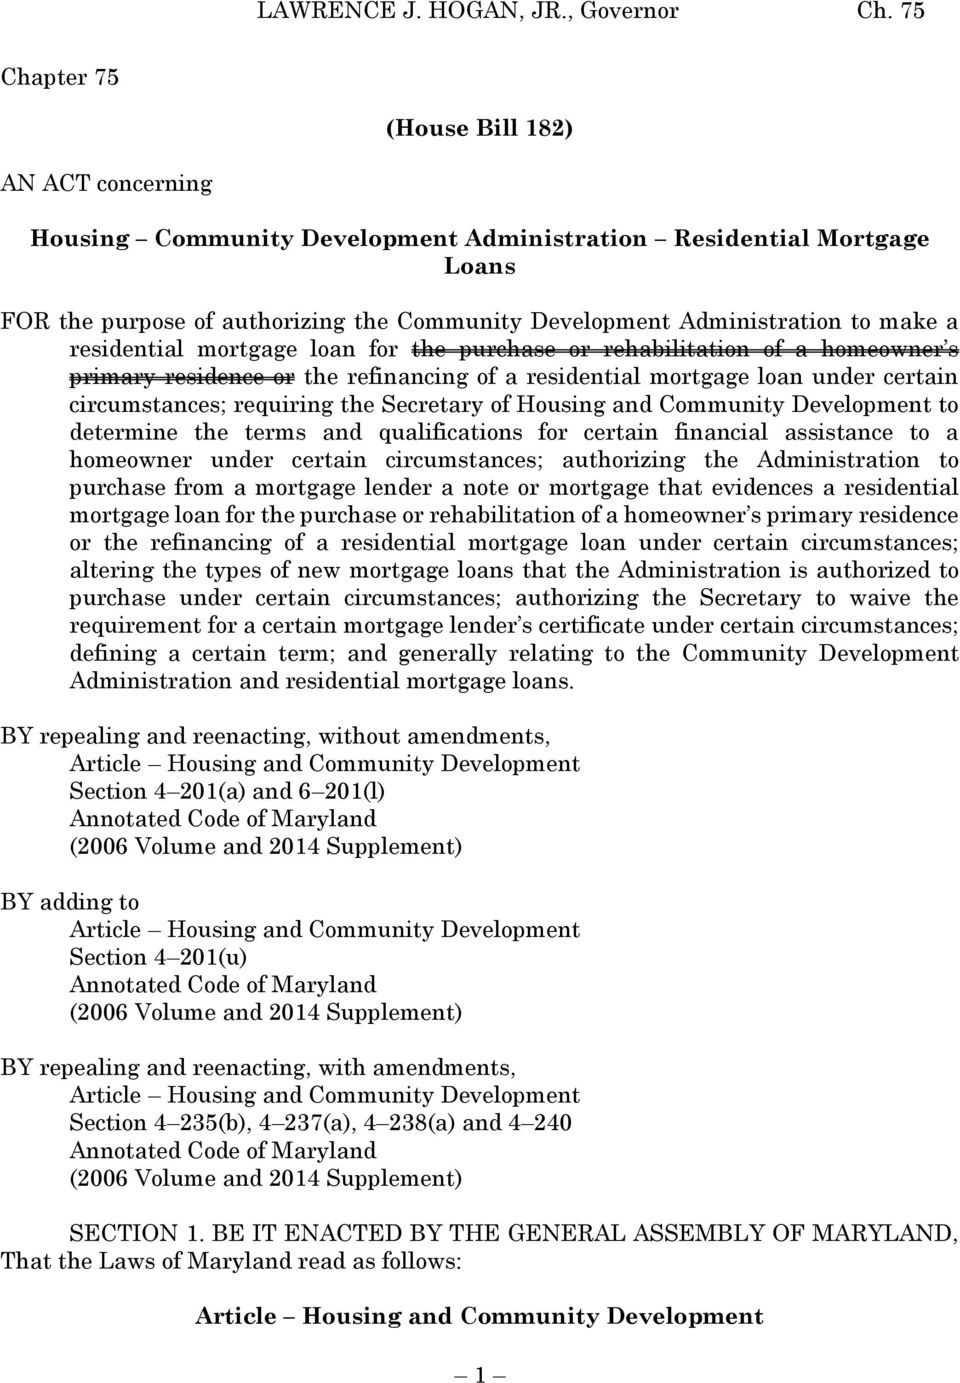 of Housing and Community Development to determine the terms and qualifications for certain financial assistance to a homeowner under certain circumstances; authorizing the Administration to purchase